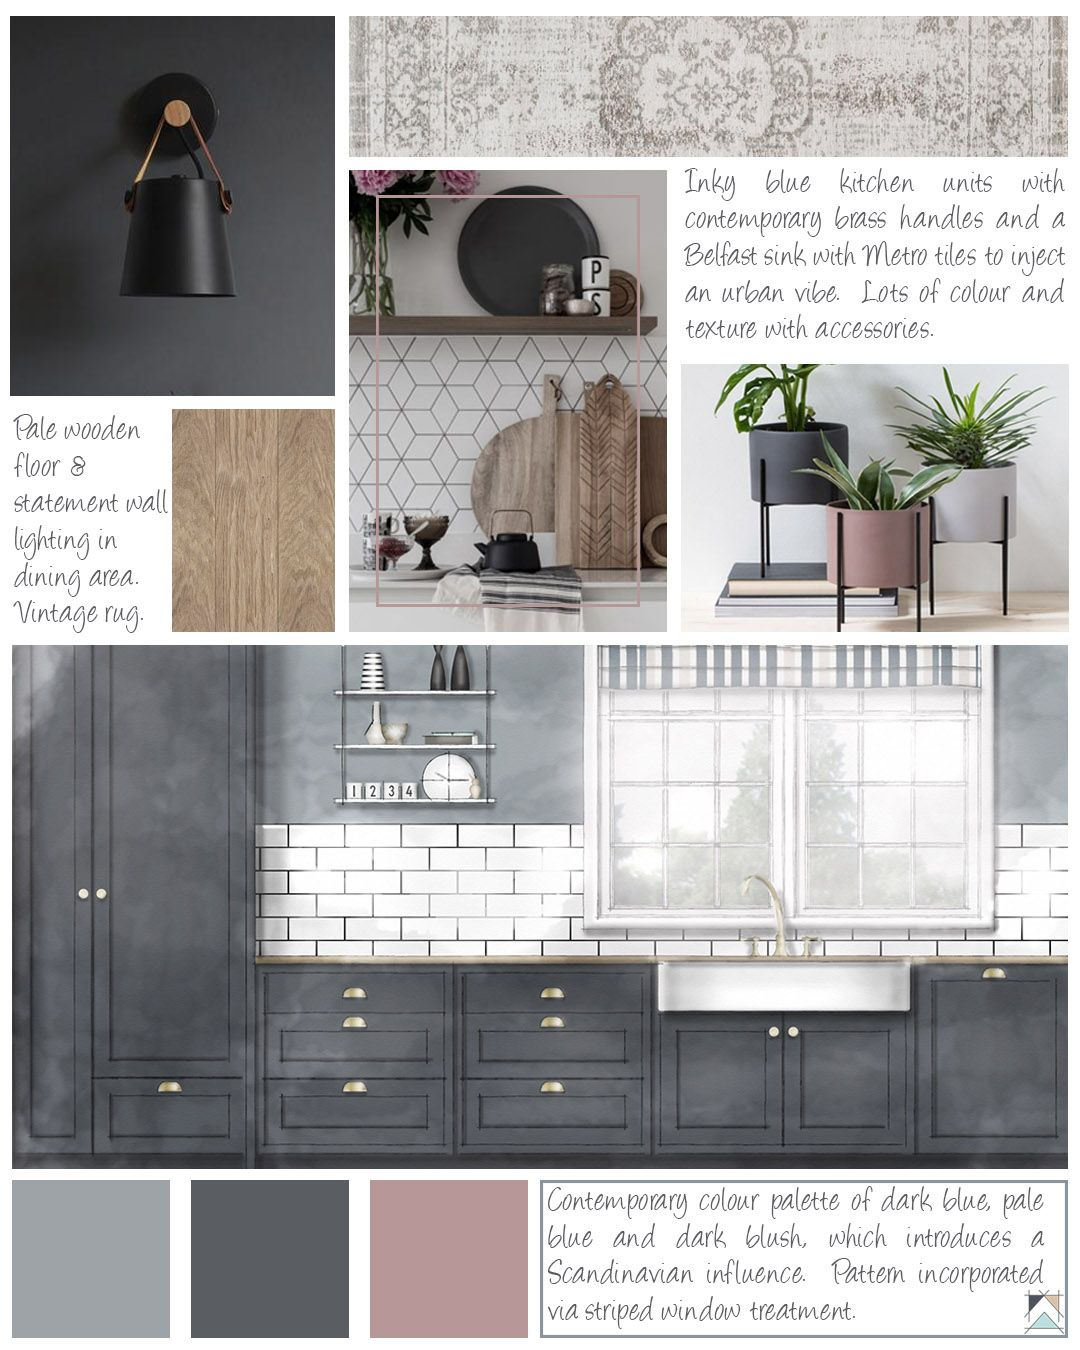 9 How To Create A Mood Board Using Canva Photoshop Interior Design Mood Board Interior Presentation Interior Design Presentation Boards